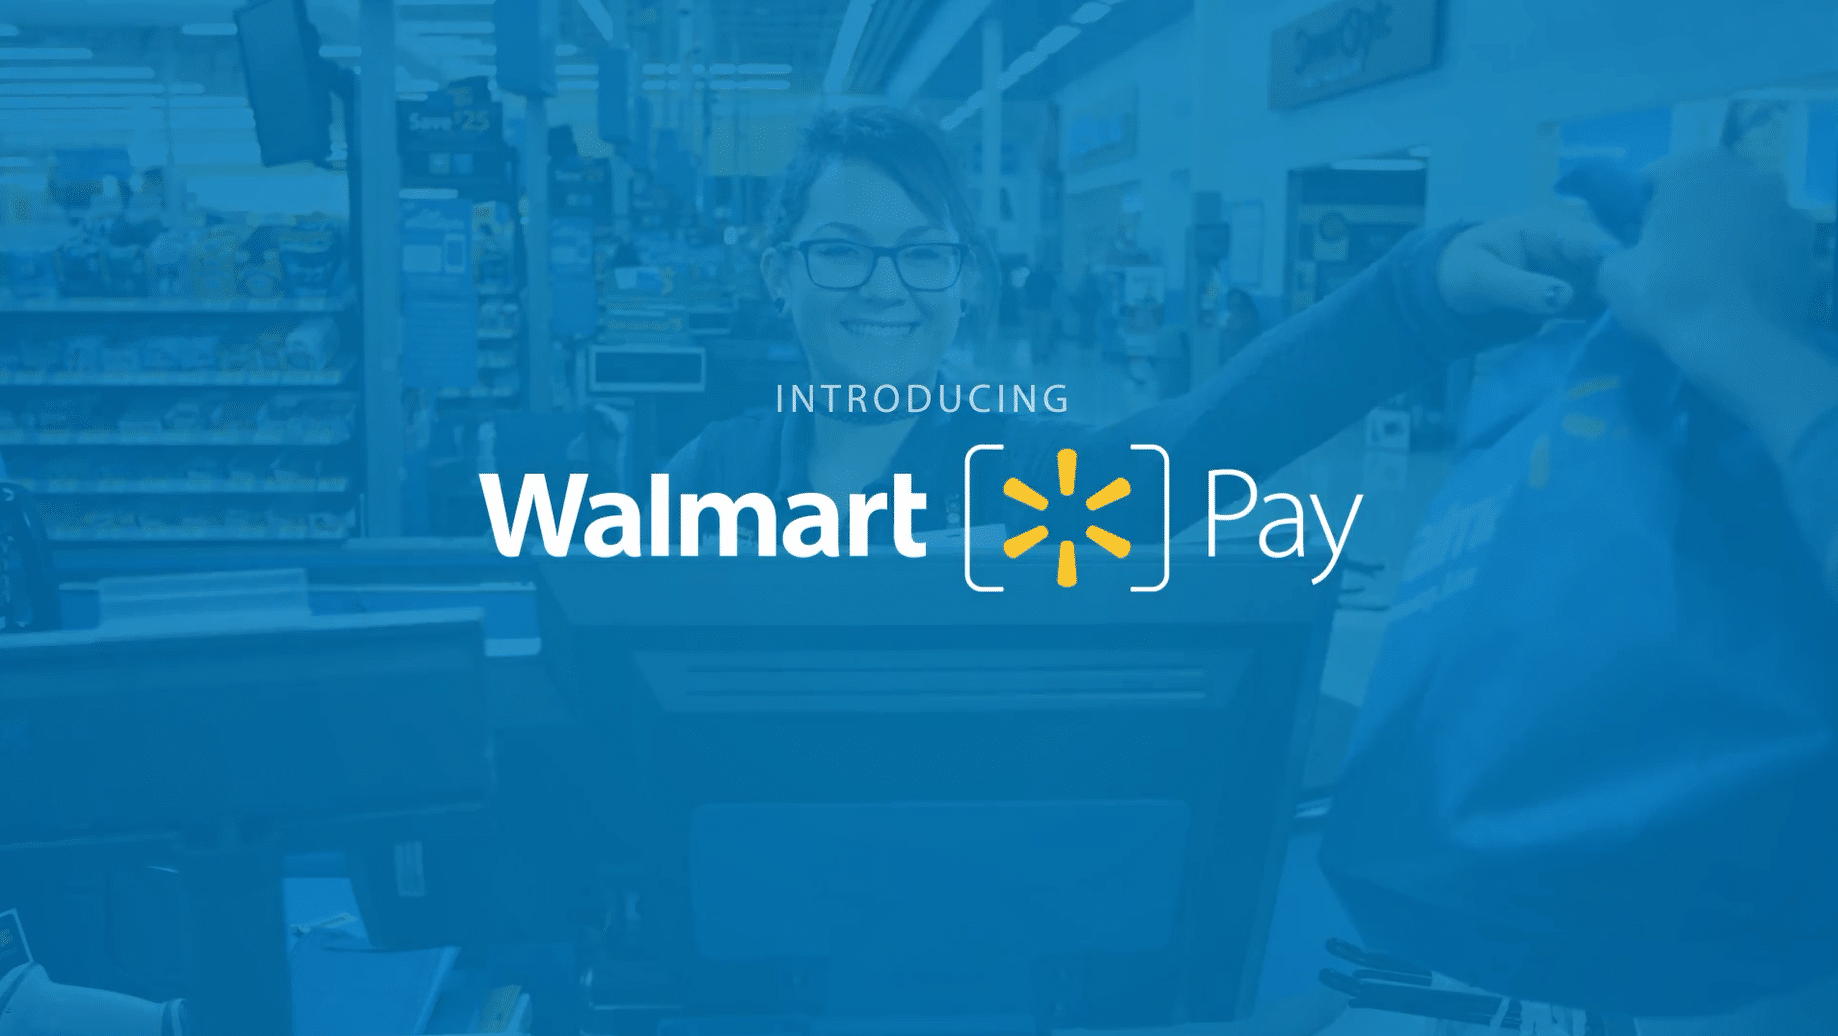 Walmart pay app review one stop shop for savings money management malvernweather Gallery